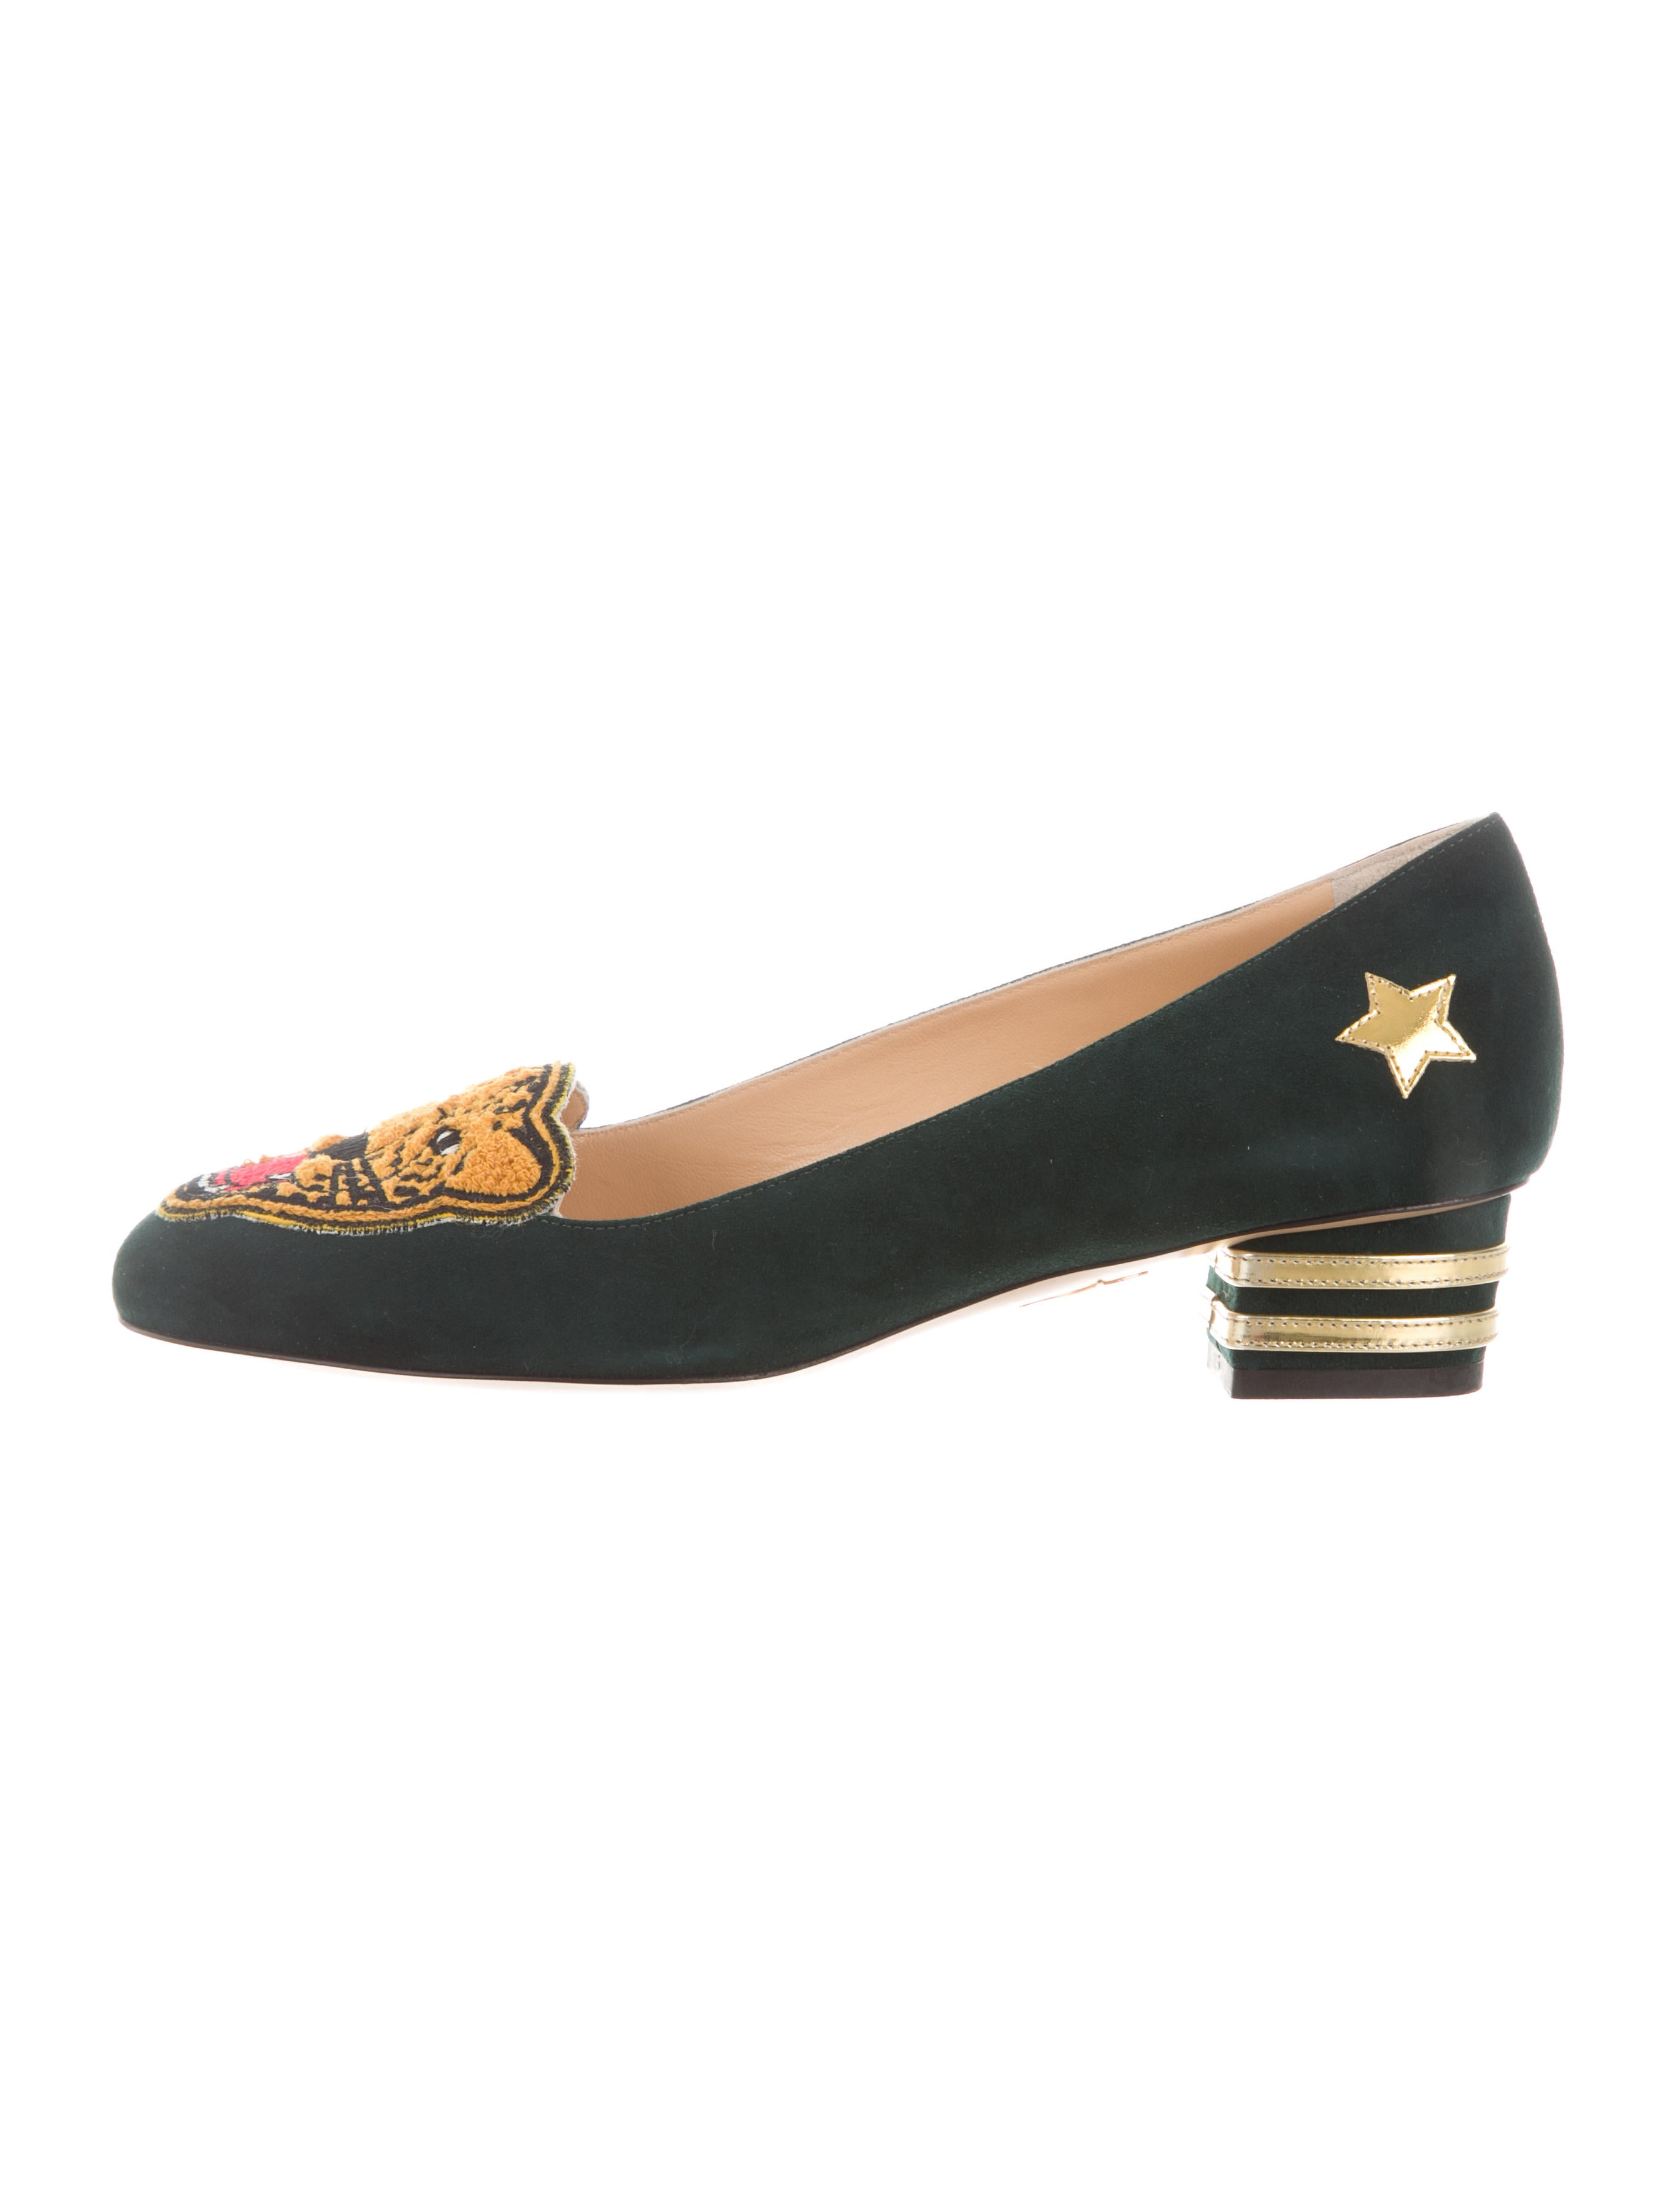 9aee57782f02 Charlotte Olympia Mascot Suede Pumps w  Tags - Shoes - CIO23250 ...